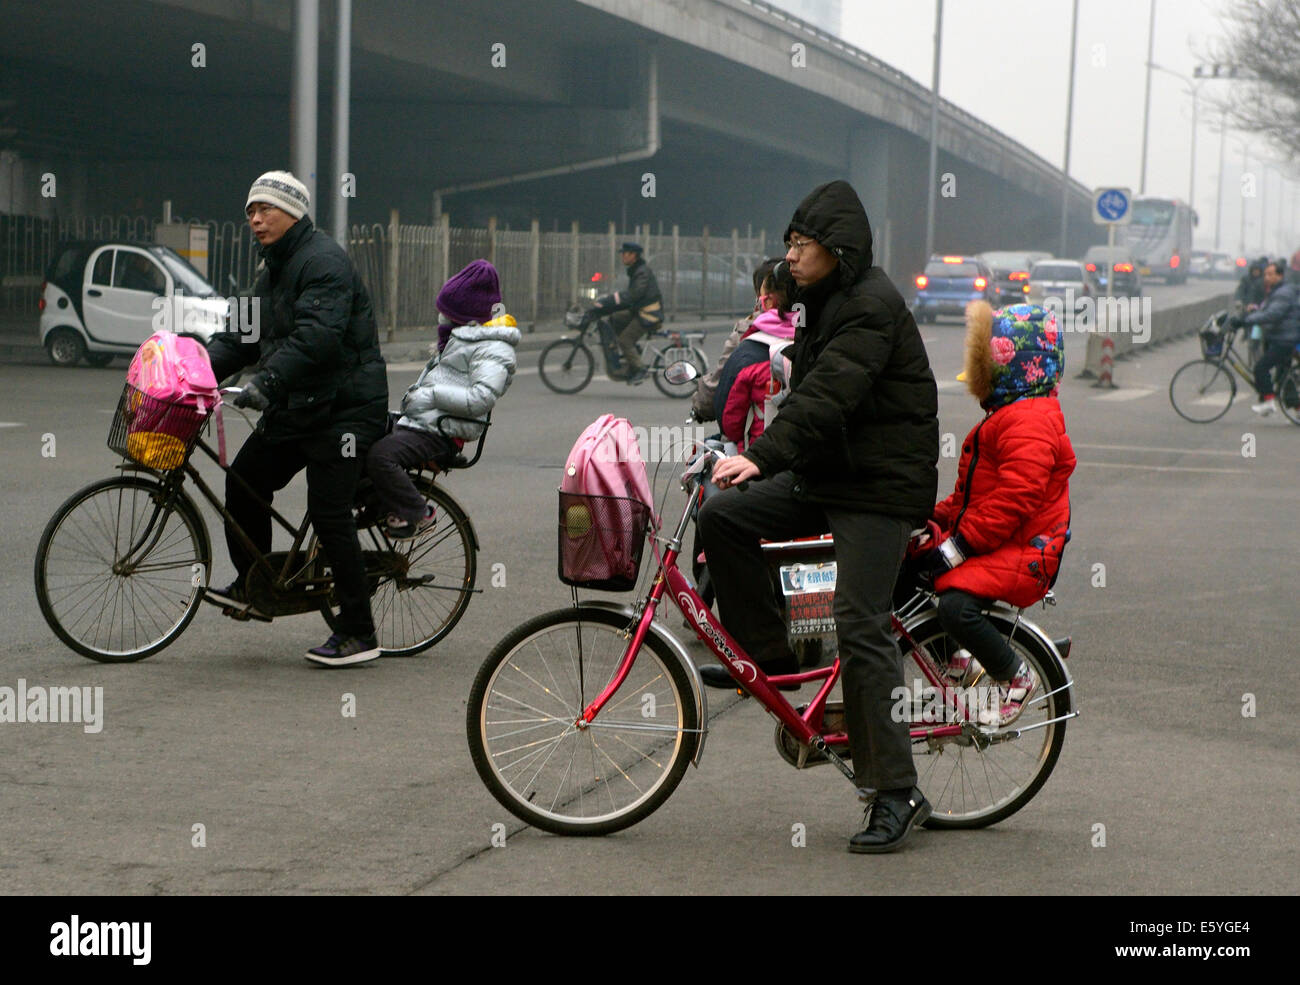 Two men riding bicycles to send their children to school in the morning in Beijing enveloped with smog. - Stock Image